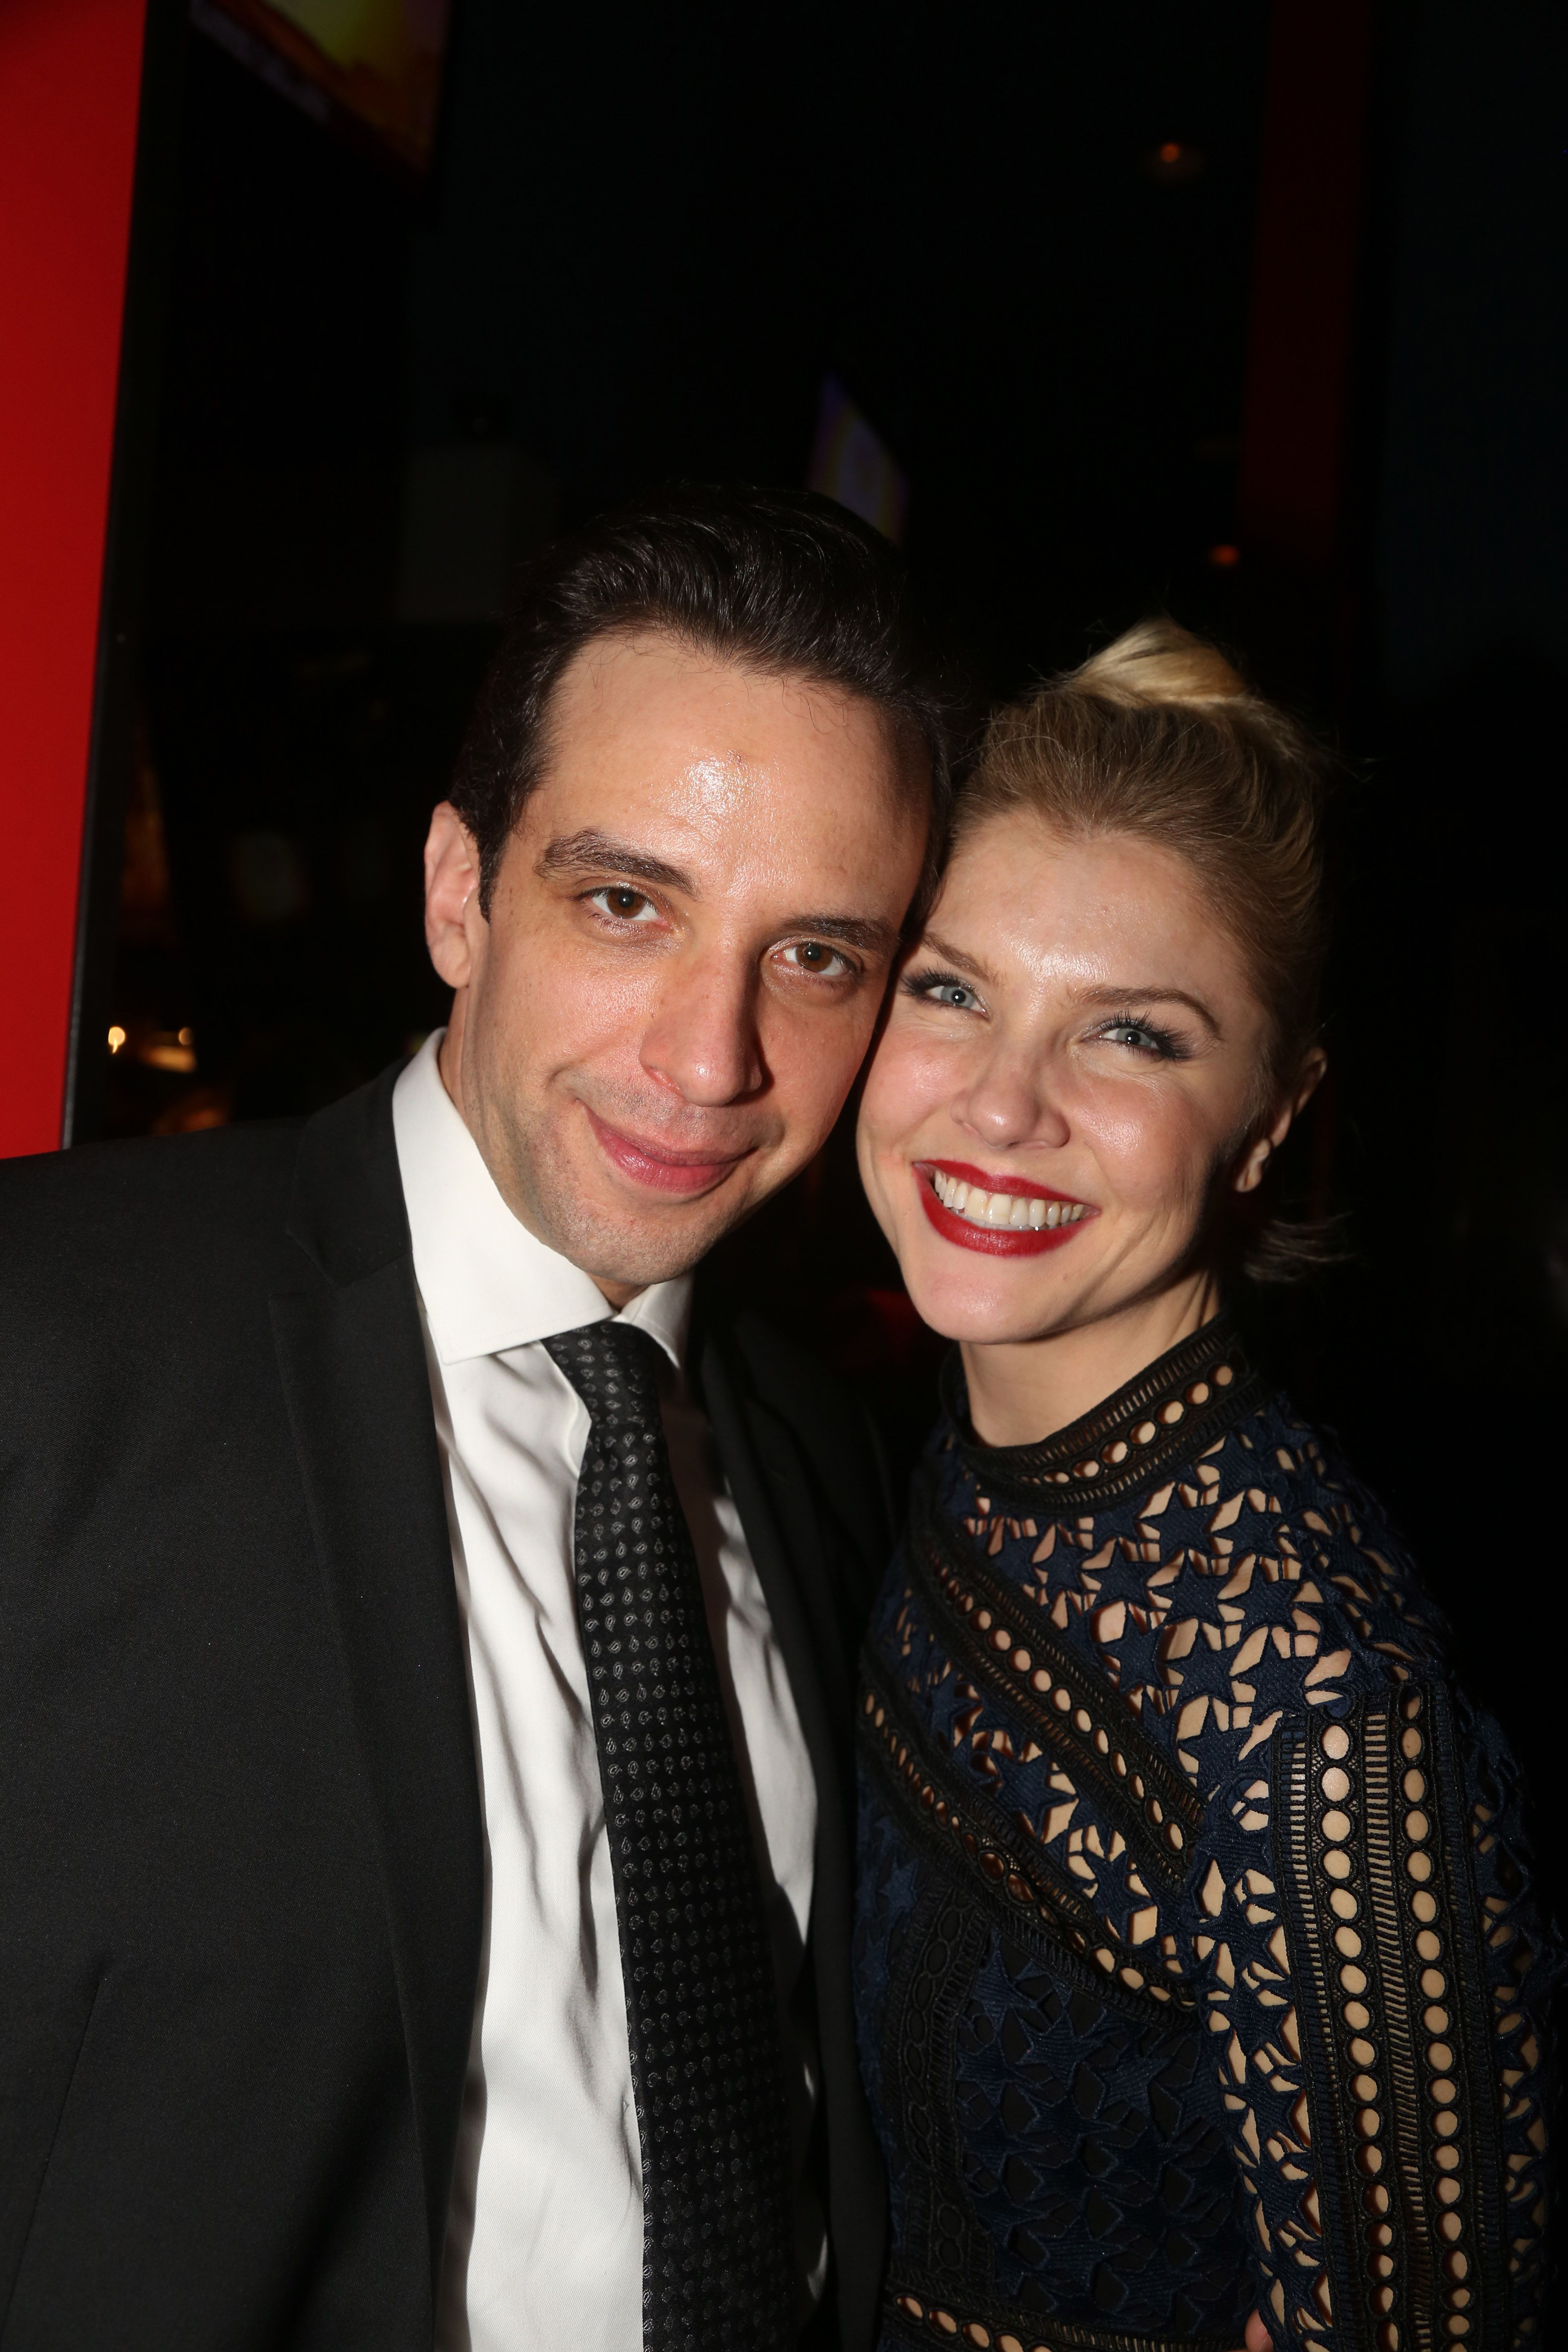 """Nick Cordero and Amanda Kloots at the after party for Manhattan Concert Production's Broadway Series """"Crazy For You"""" on February 19, 2017 in New York City 